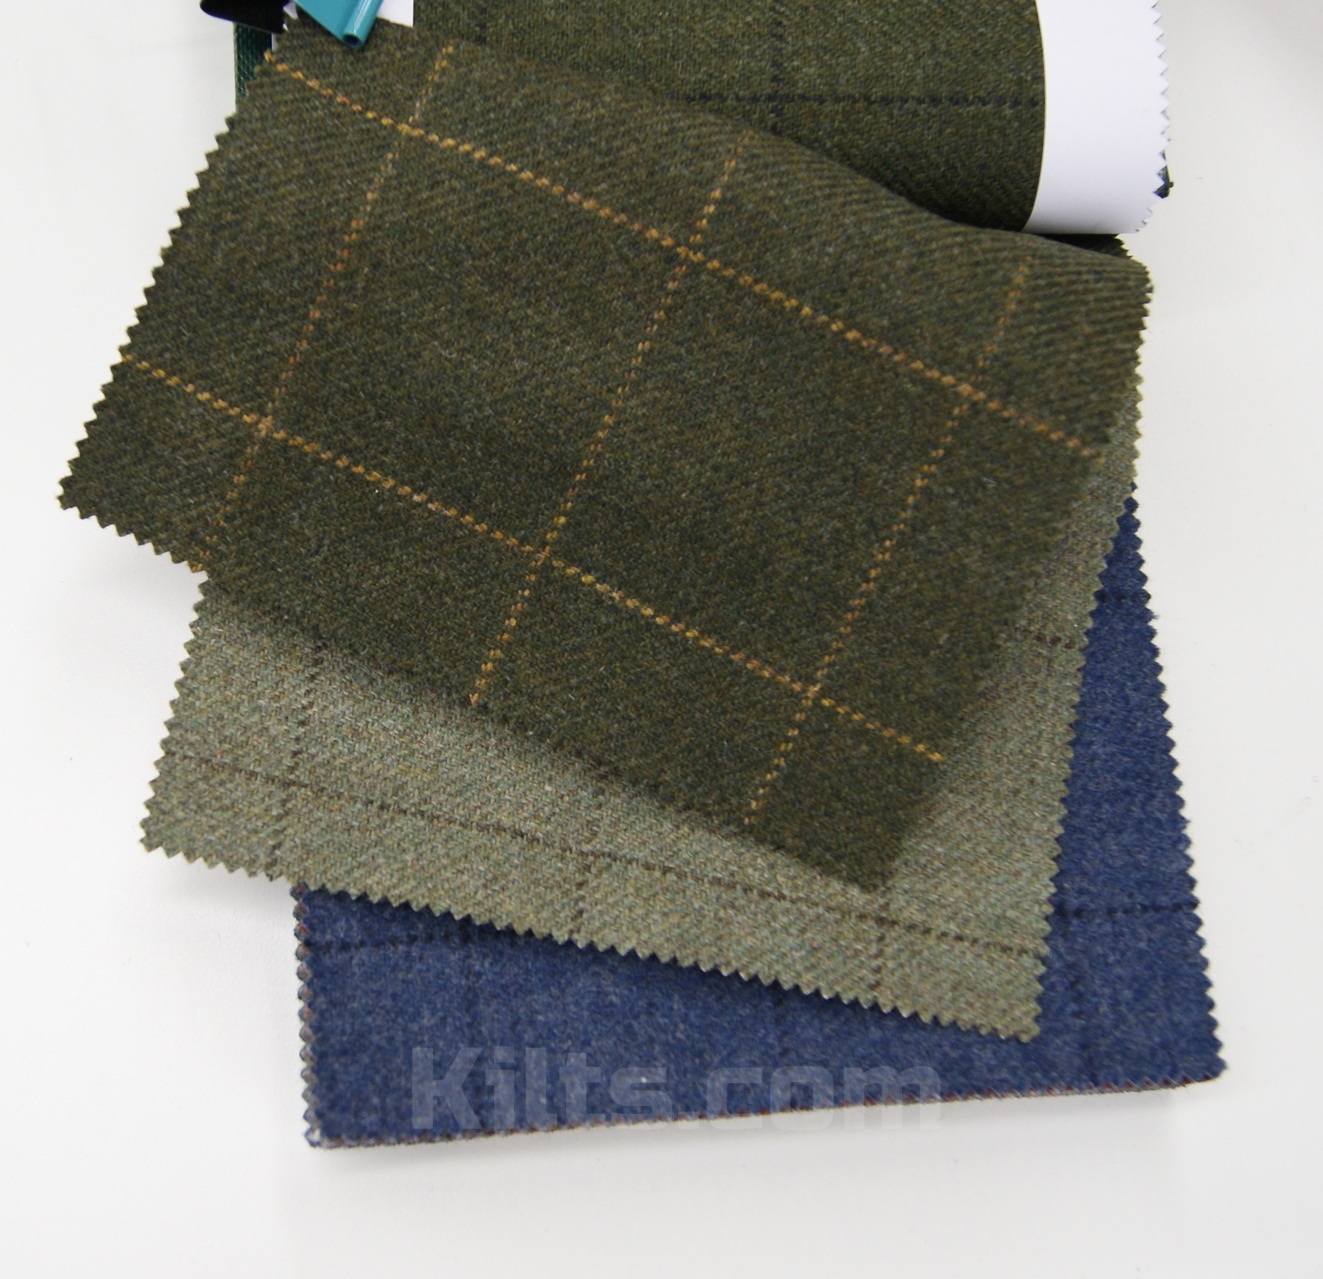 Need a Tweed Swatch or a Tweed Sample before you buy a Tweed product?